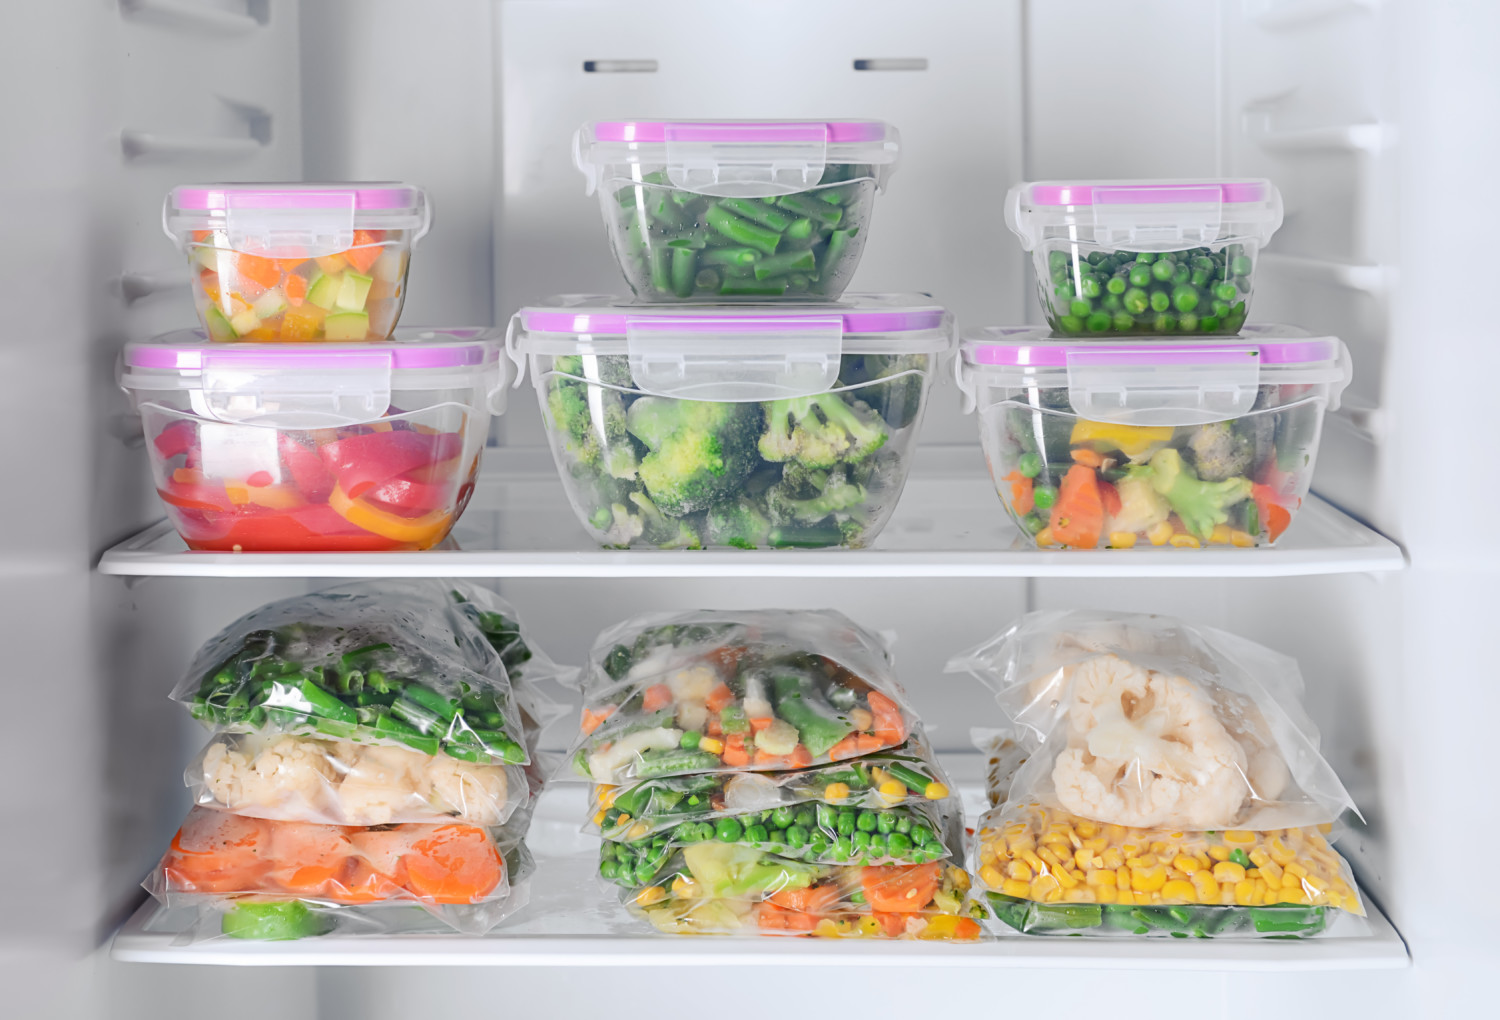 Containers and plastic bags with vegetables in fridge